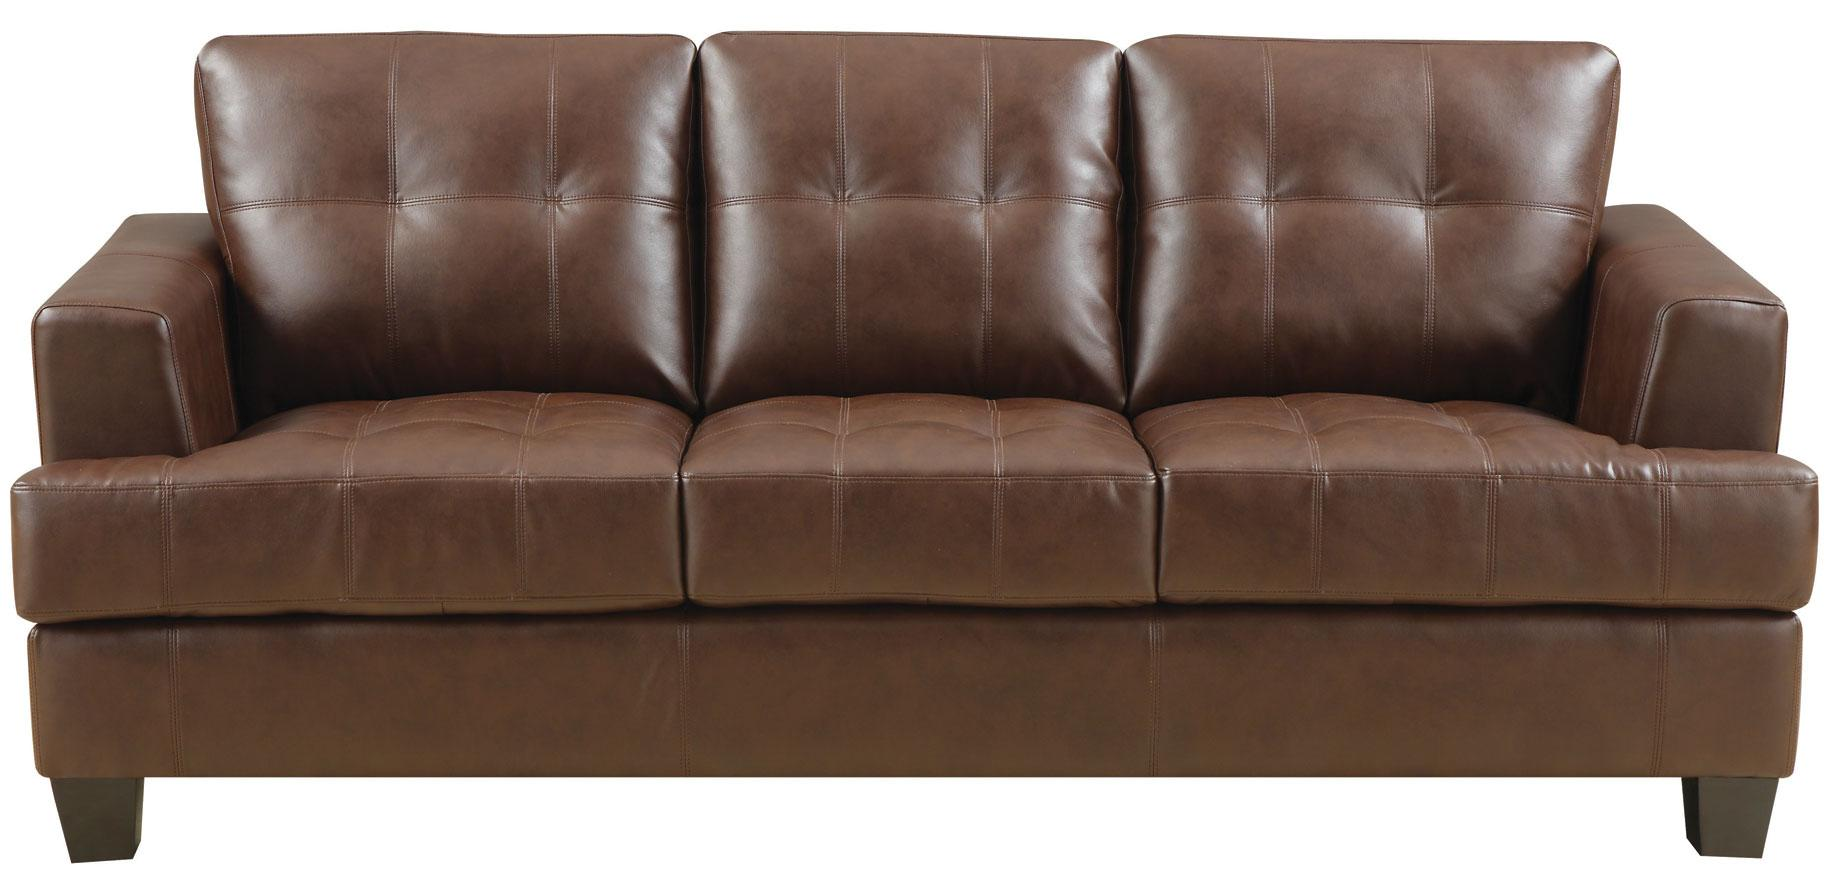 Coaster Samuel Sofa - Item Number: 504071